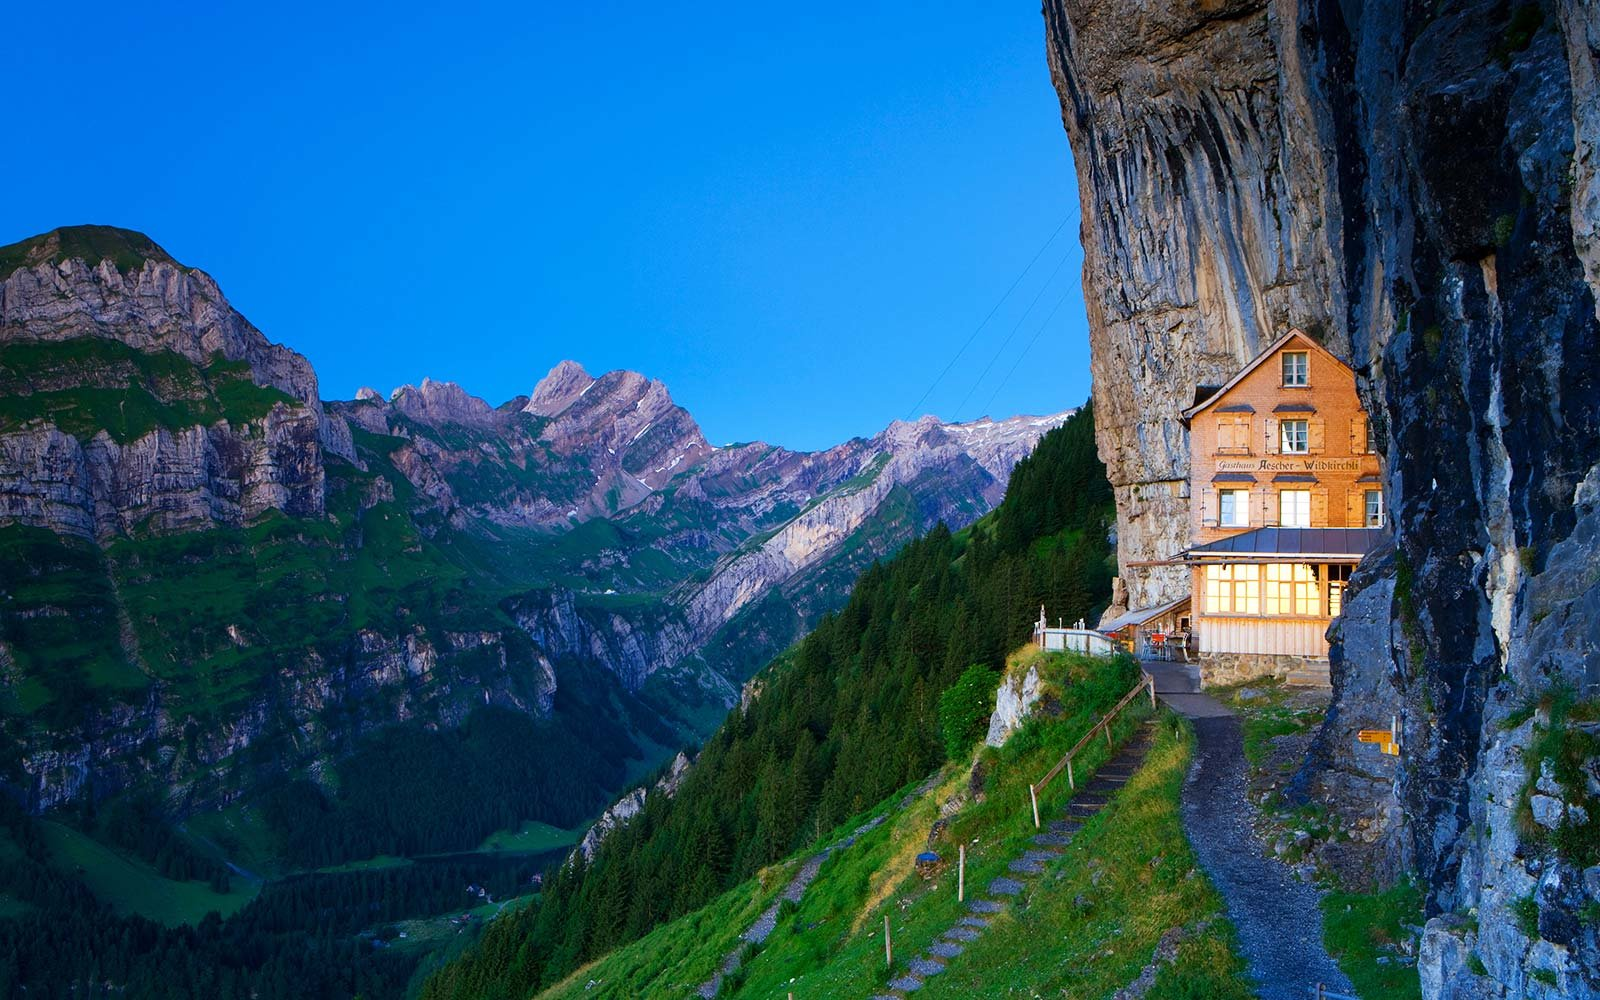 Town And Country Houston >> The Aescher Guesthouse in the Swiss Alps Will Put You on Edge | Travel + Leisure